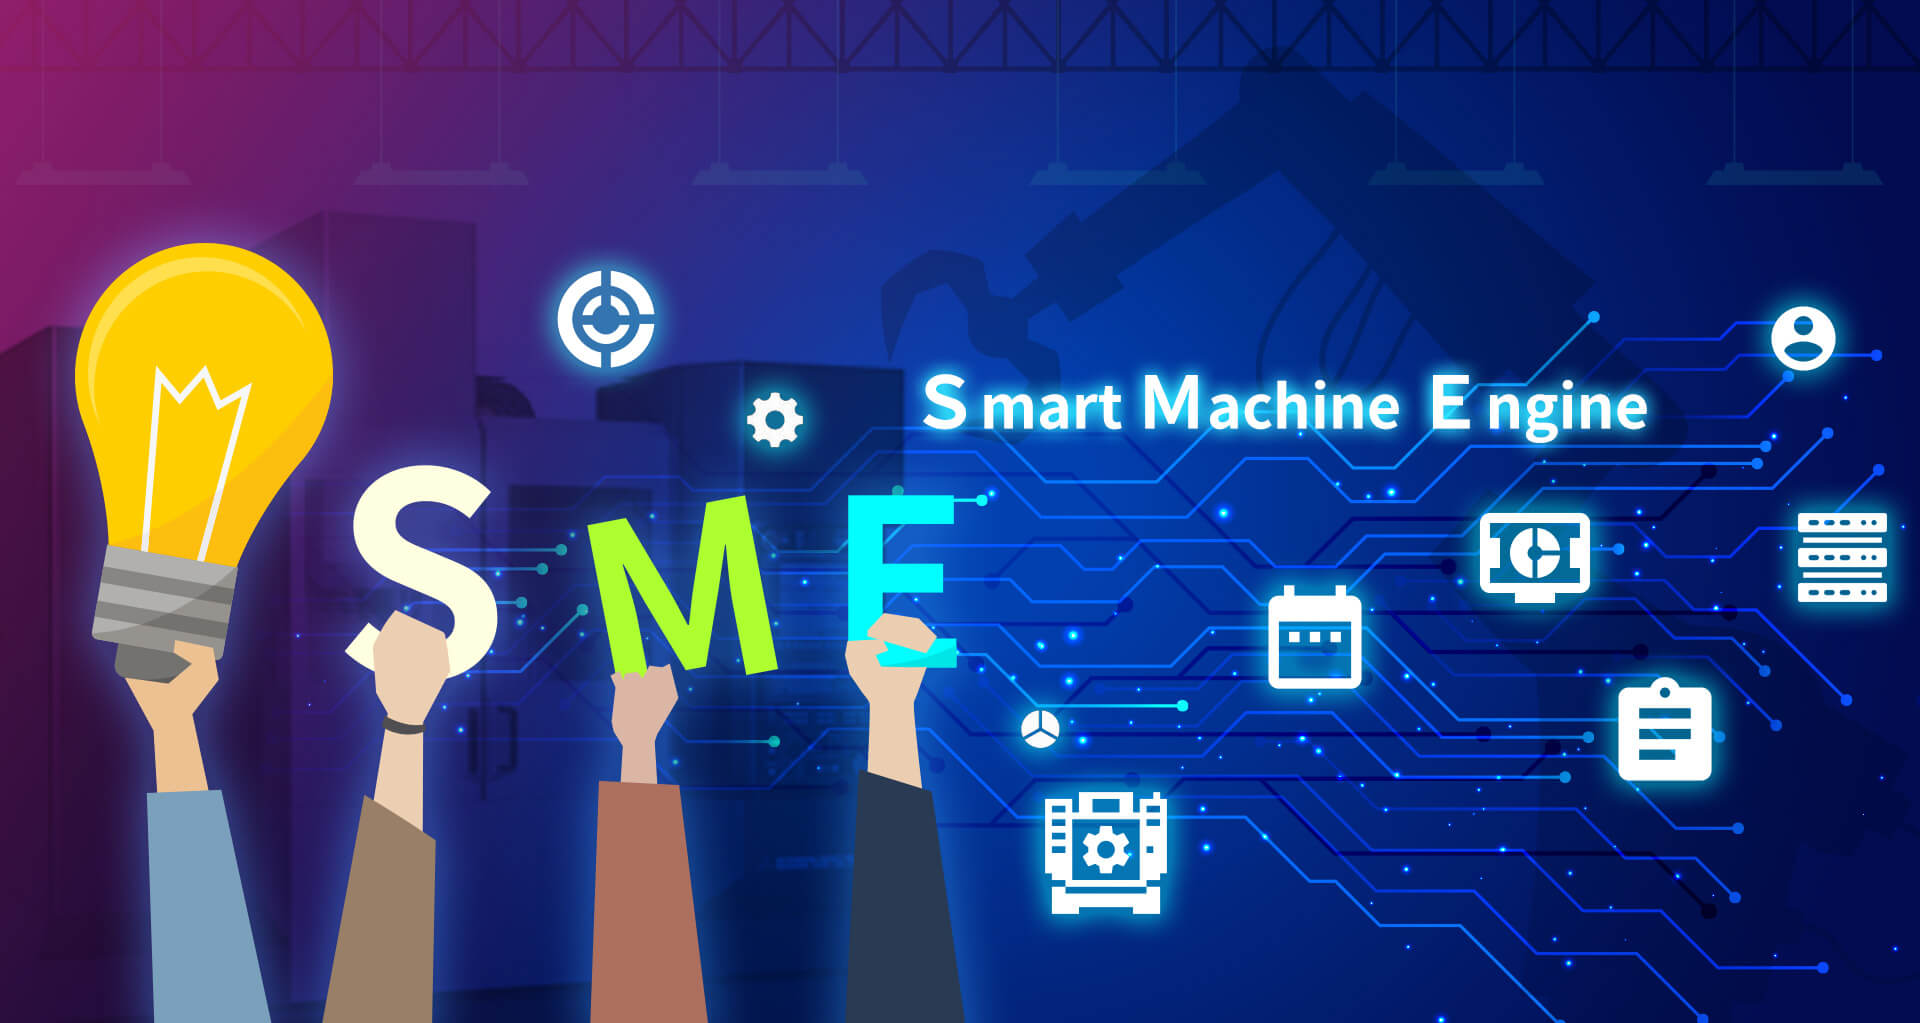 Smart Machine Engine